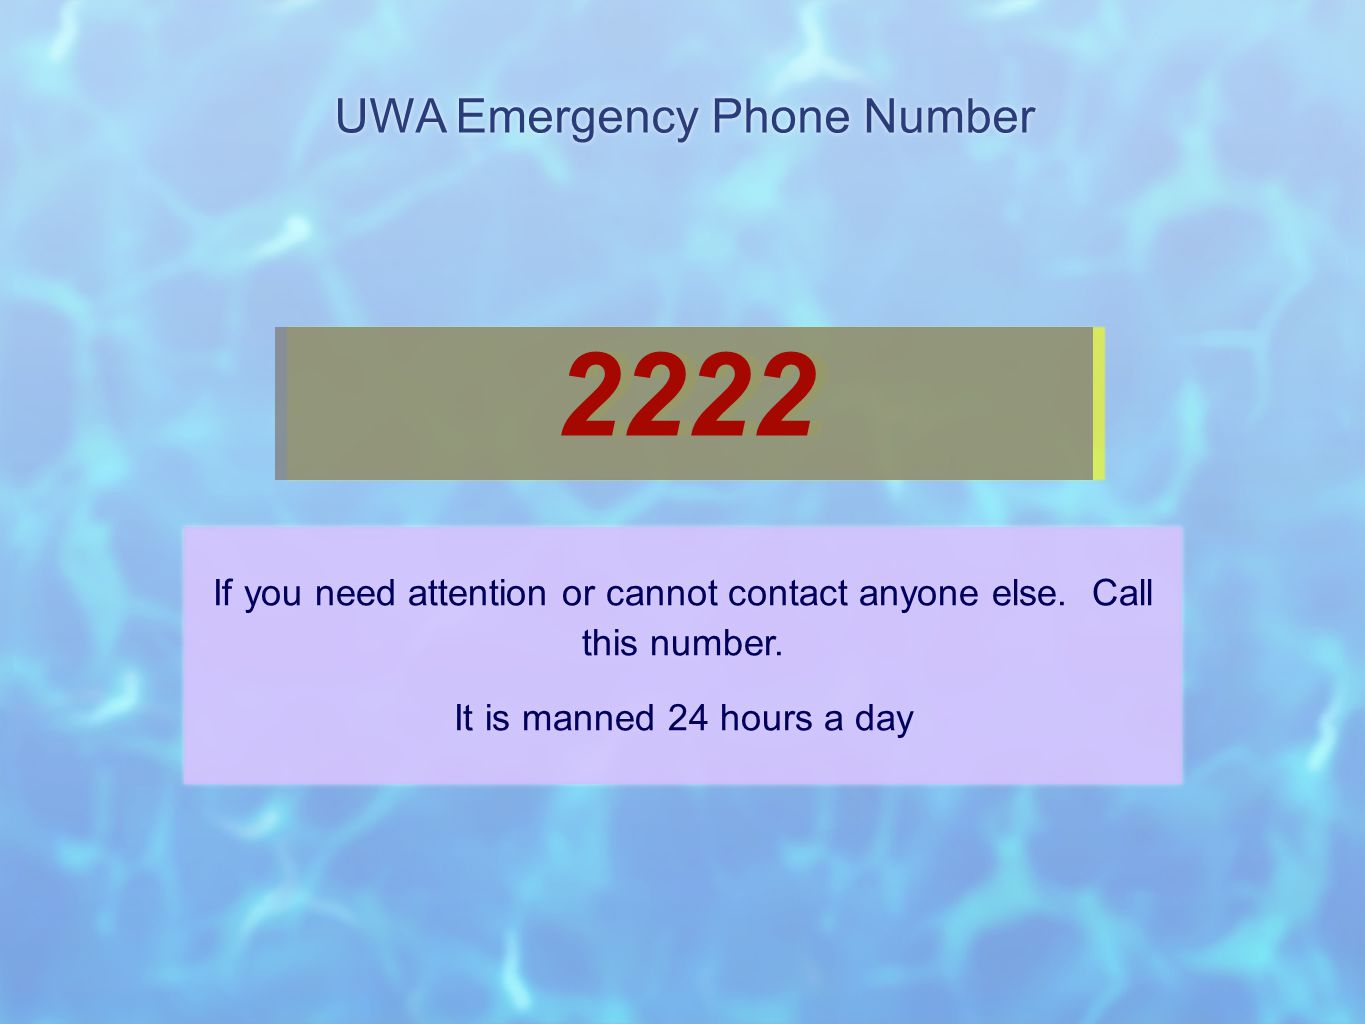 UWA Emergency Phone Number 2222 If you need attention or cannot contact anyone else.